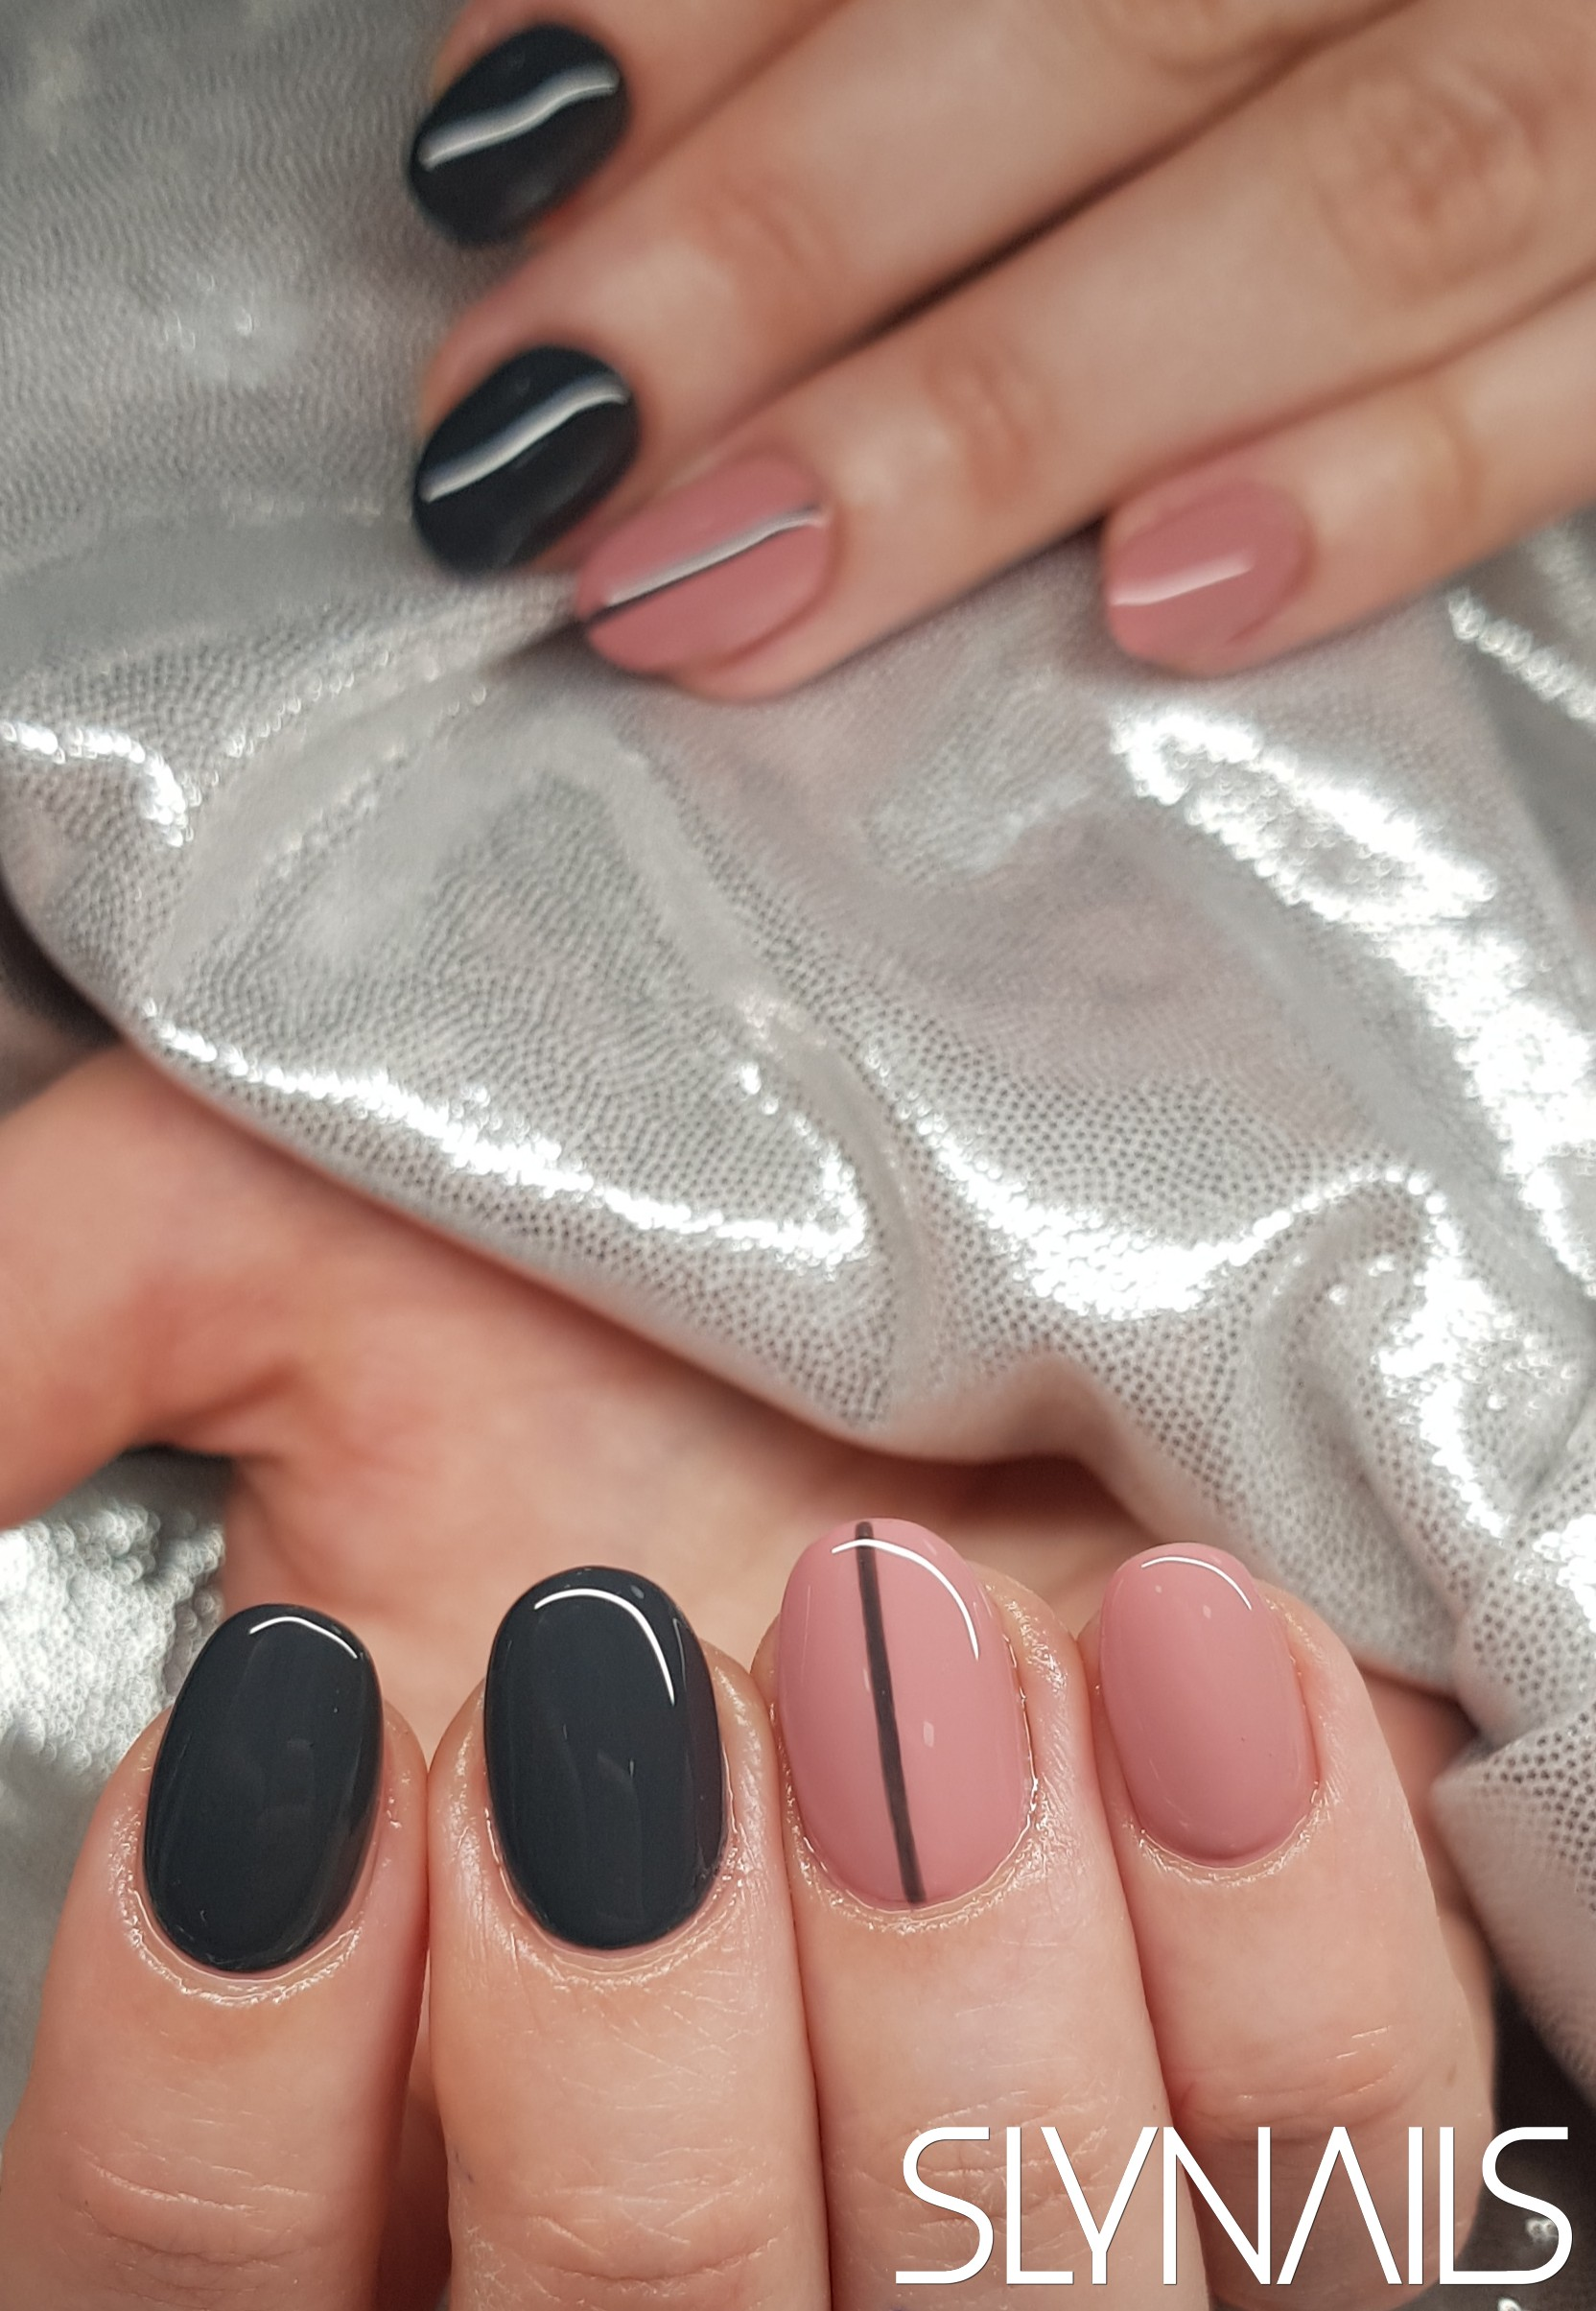 Gel-lac (gel polish), Grey, Nude, Art gel decorations, One color, Rounded